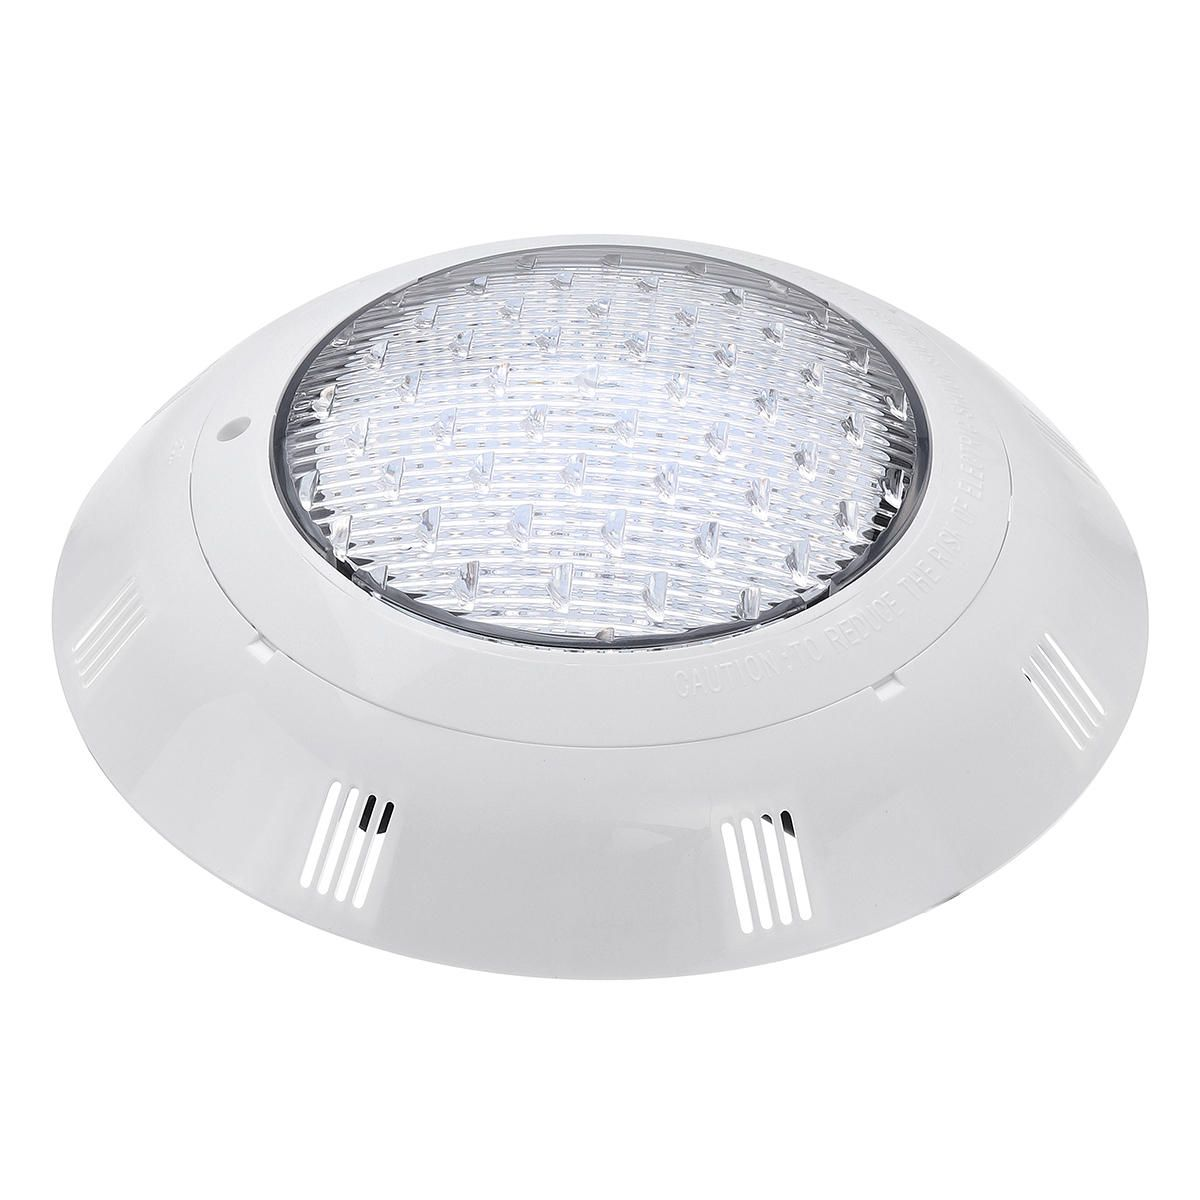 RVA US$60.58 45W RGB LED Swimming Pool Light 450LED IP68 Waterproof AC/DC12V-24V Outdoor UnderWater Lamp